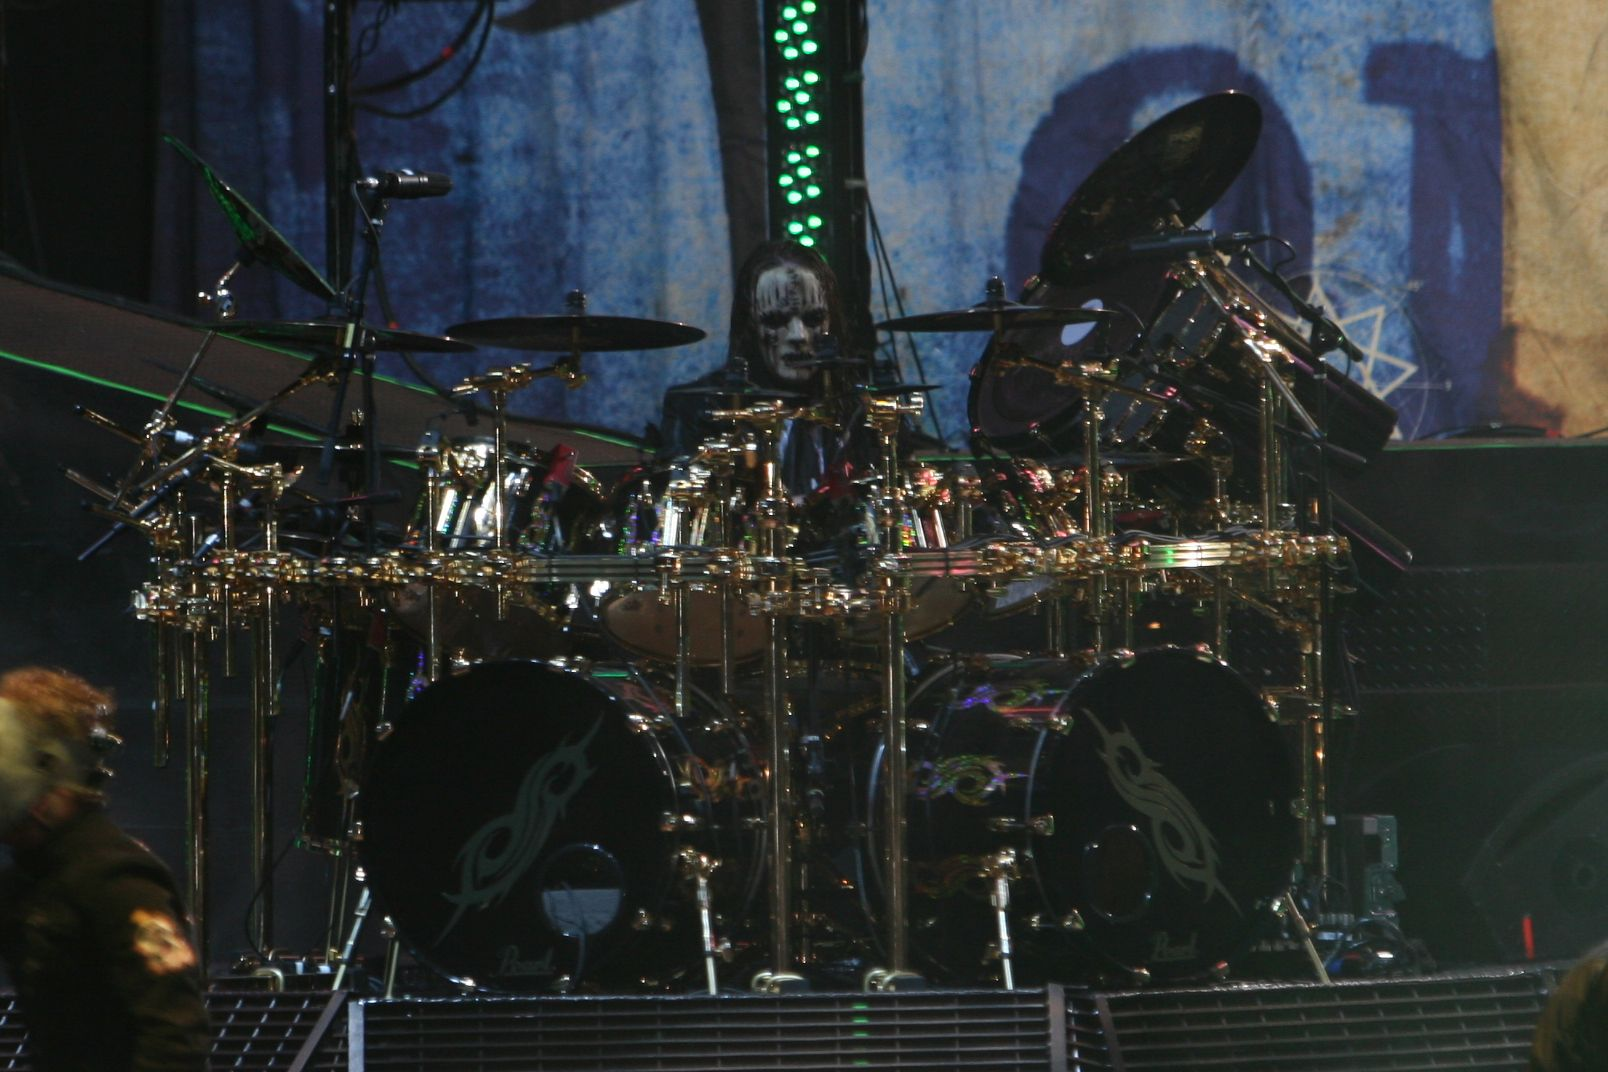 Joey jordison style favor photos pictures and wallpapers for - Joey Jordison Slipknot S Drummer